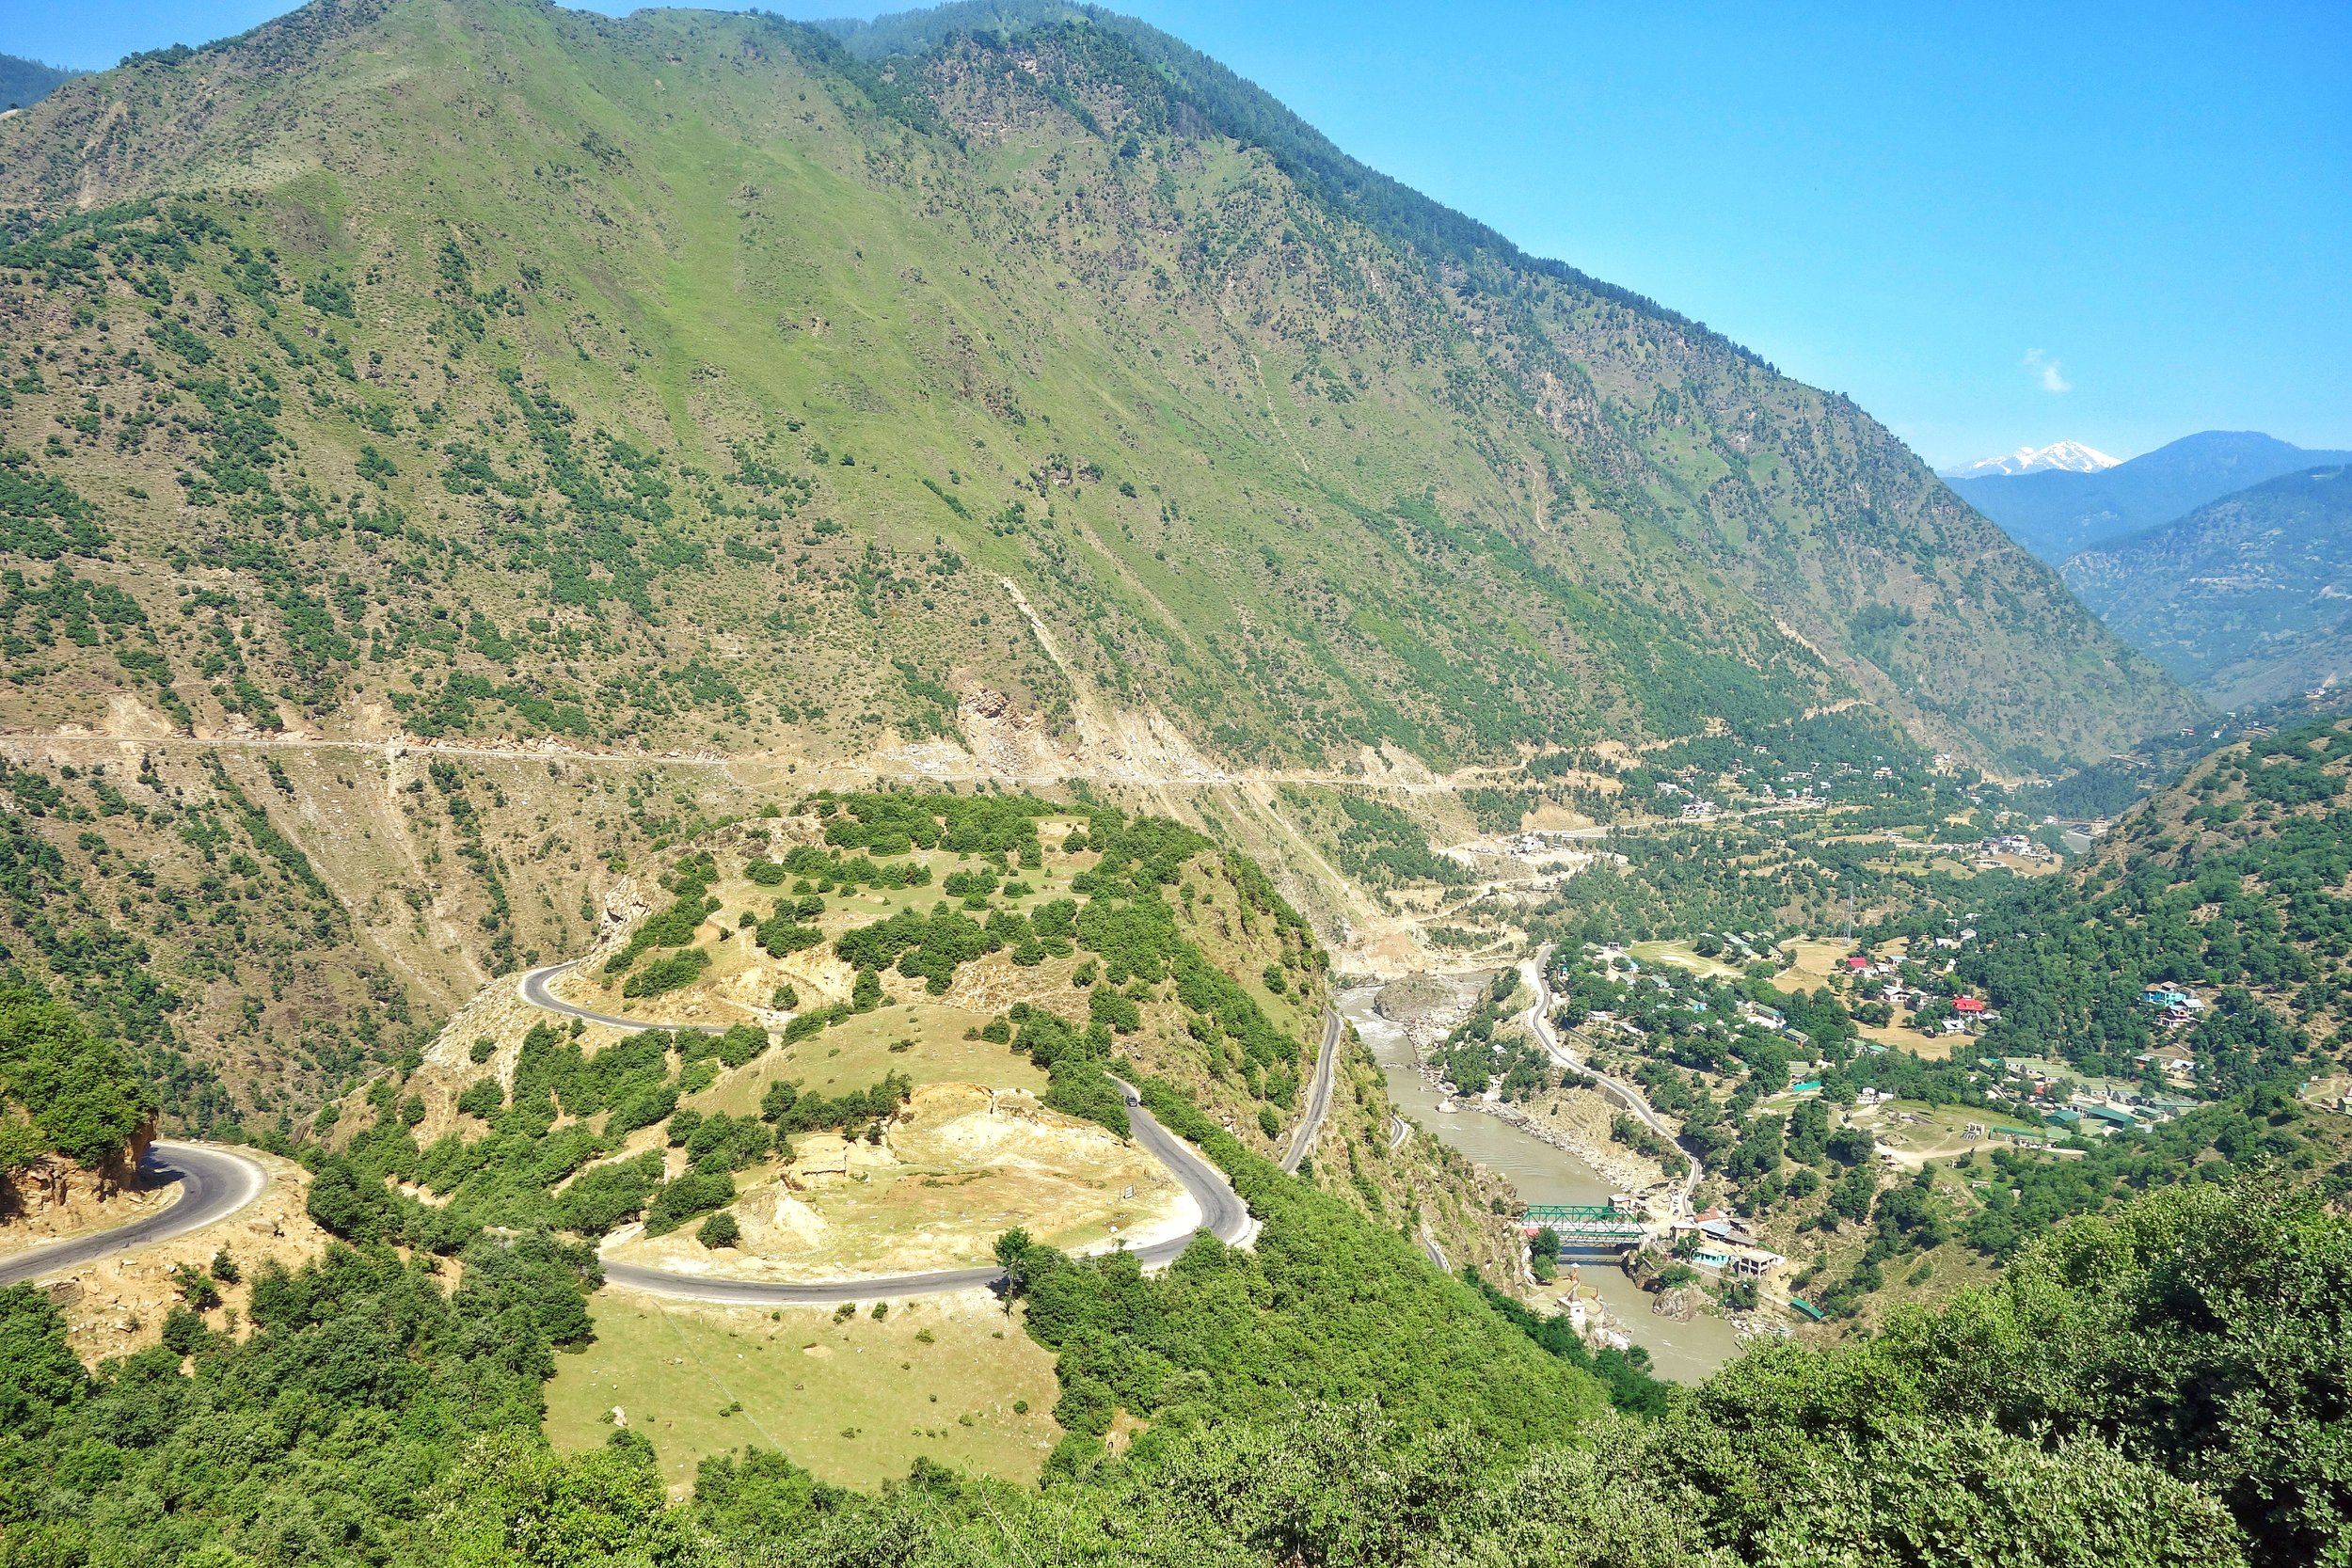 Bandarkoot near Kishtwar where the Marsudar meets the Chenab / Chandrabhaga